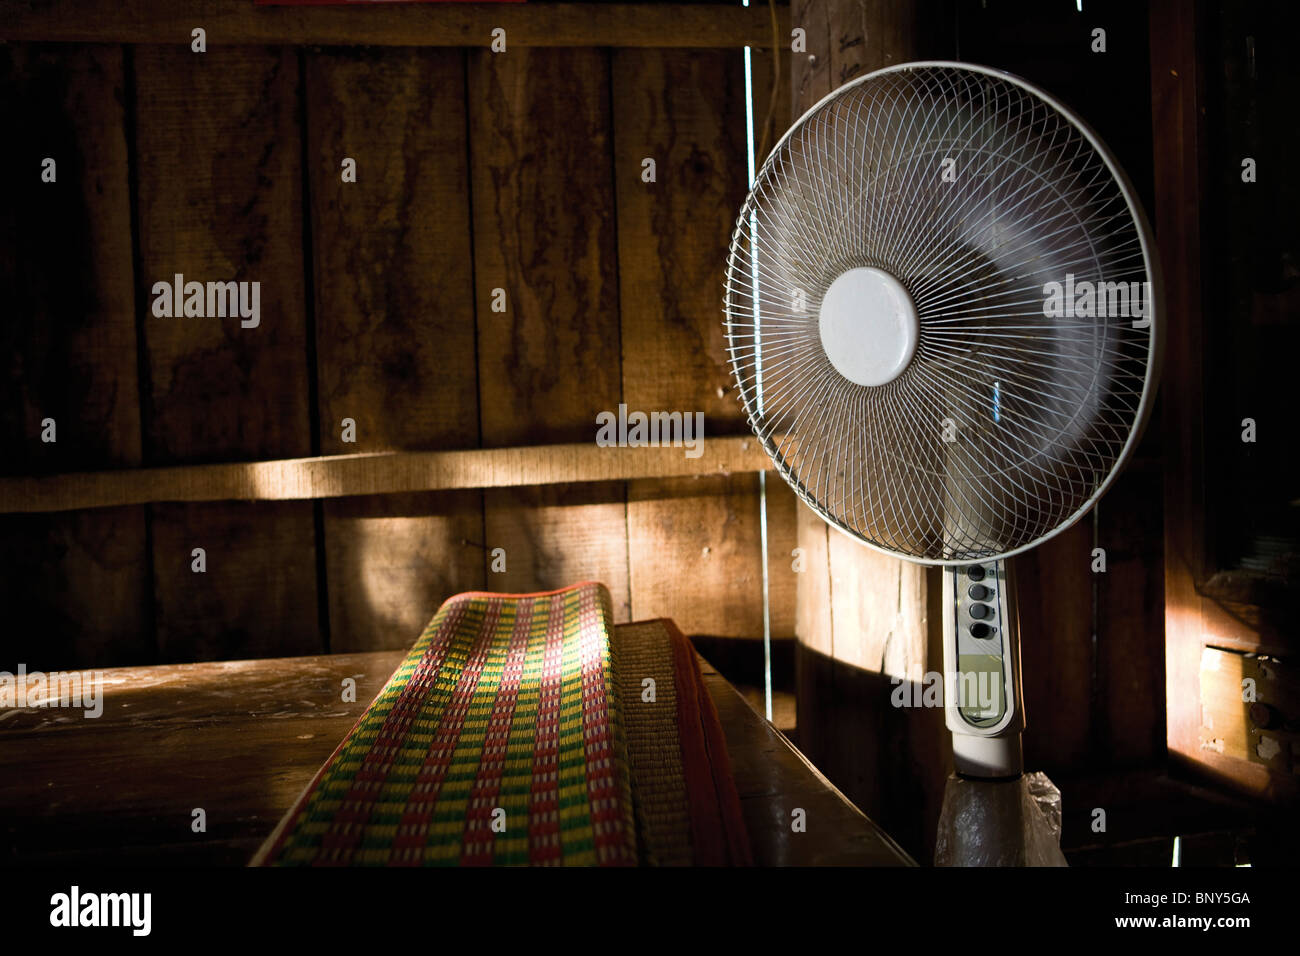 Wooden Electric Fan River Delta Fan Stock Photos And River Delta Fan Stock